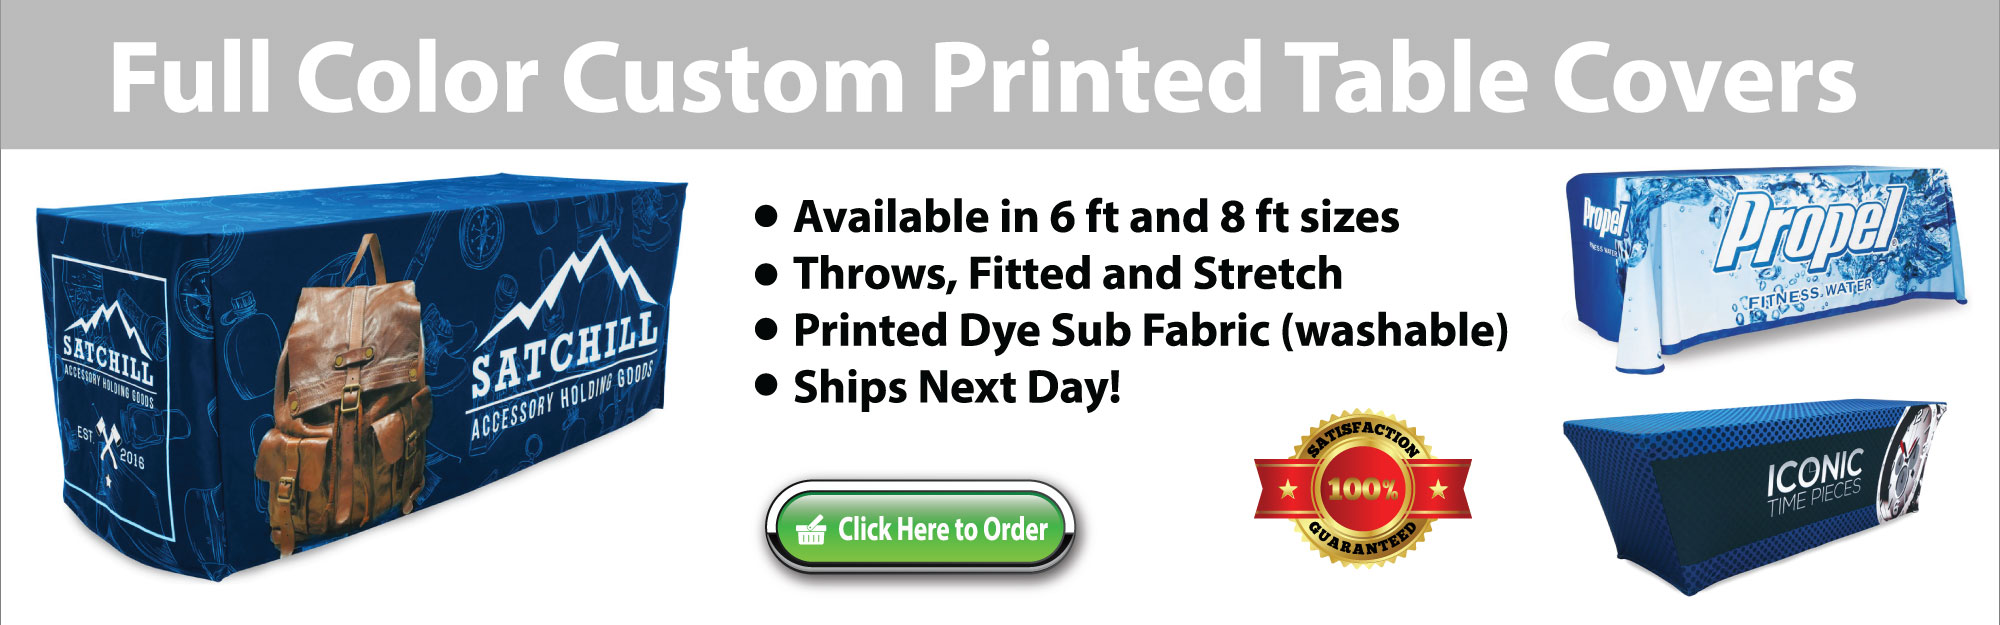 Full color custom printed table covers